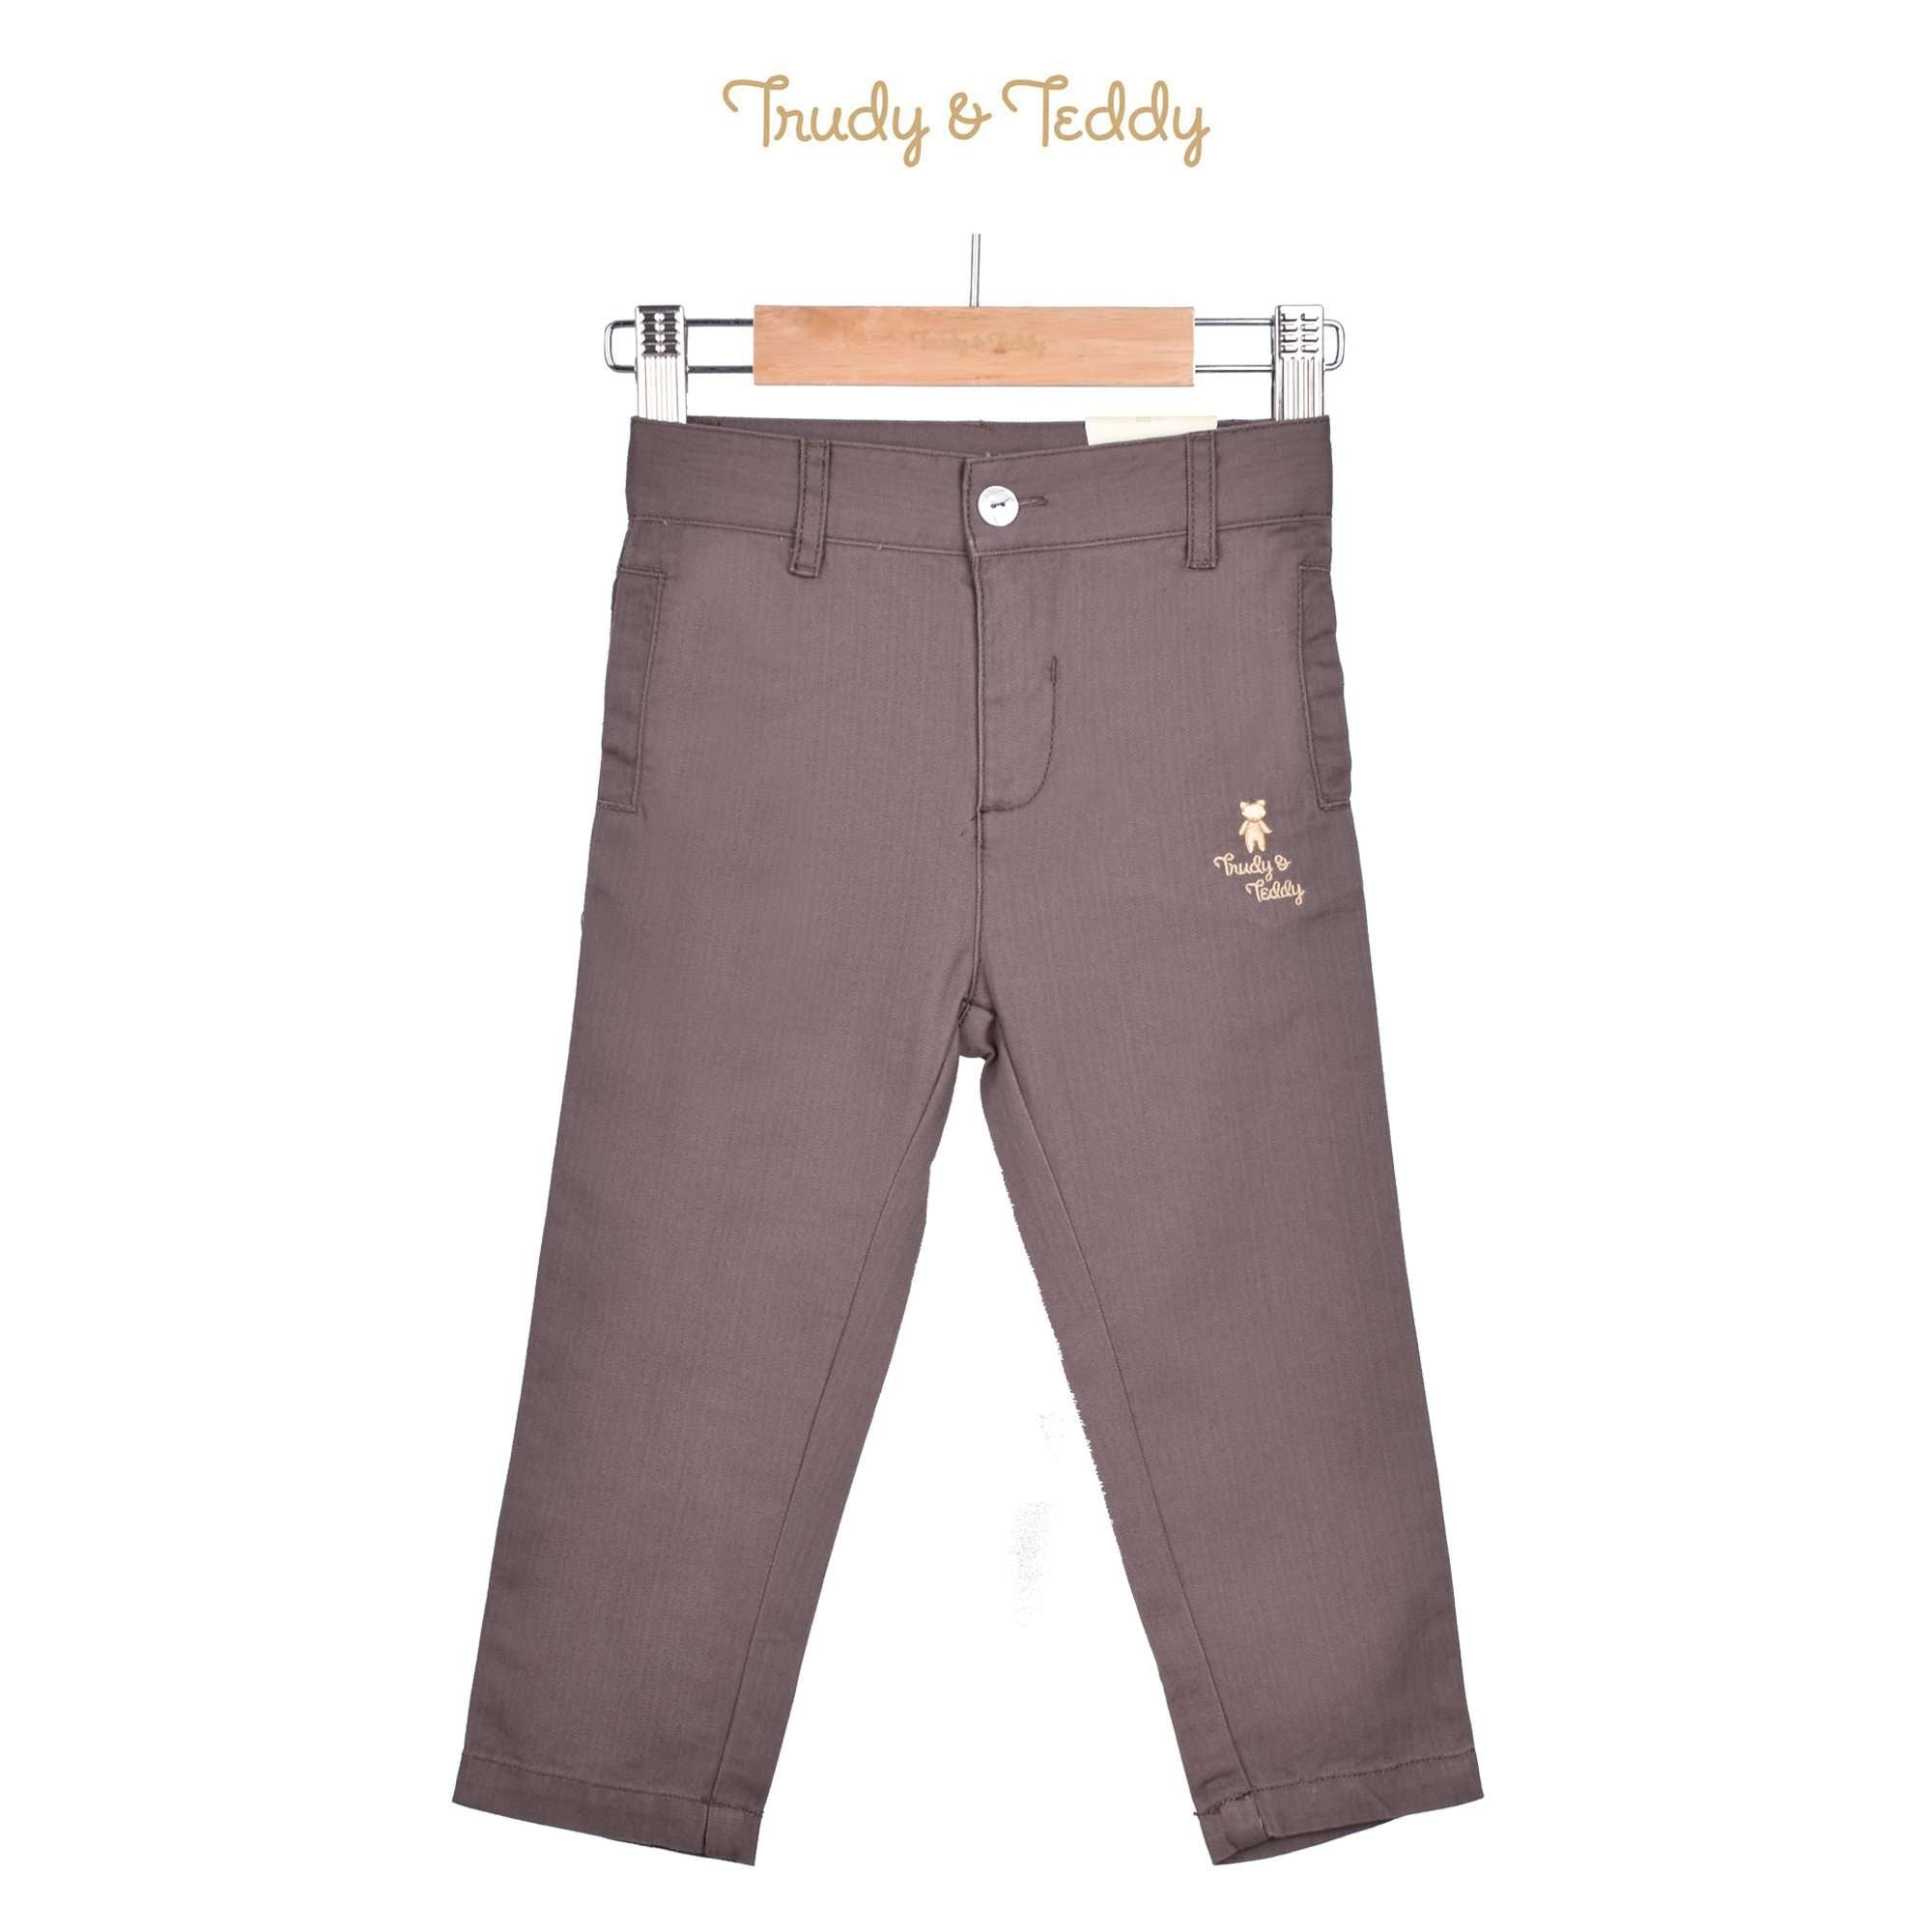 Trudy & Teddy Toddler Boy Long Pants - Brown 815152-251 : Buy Trudy & Teddy online at CMG.MY